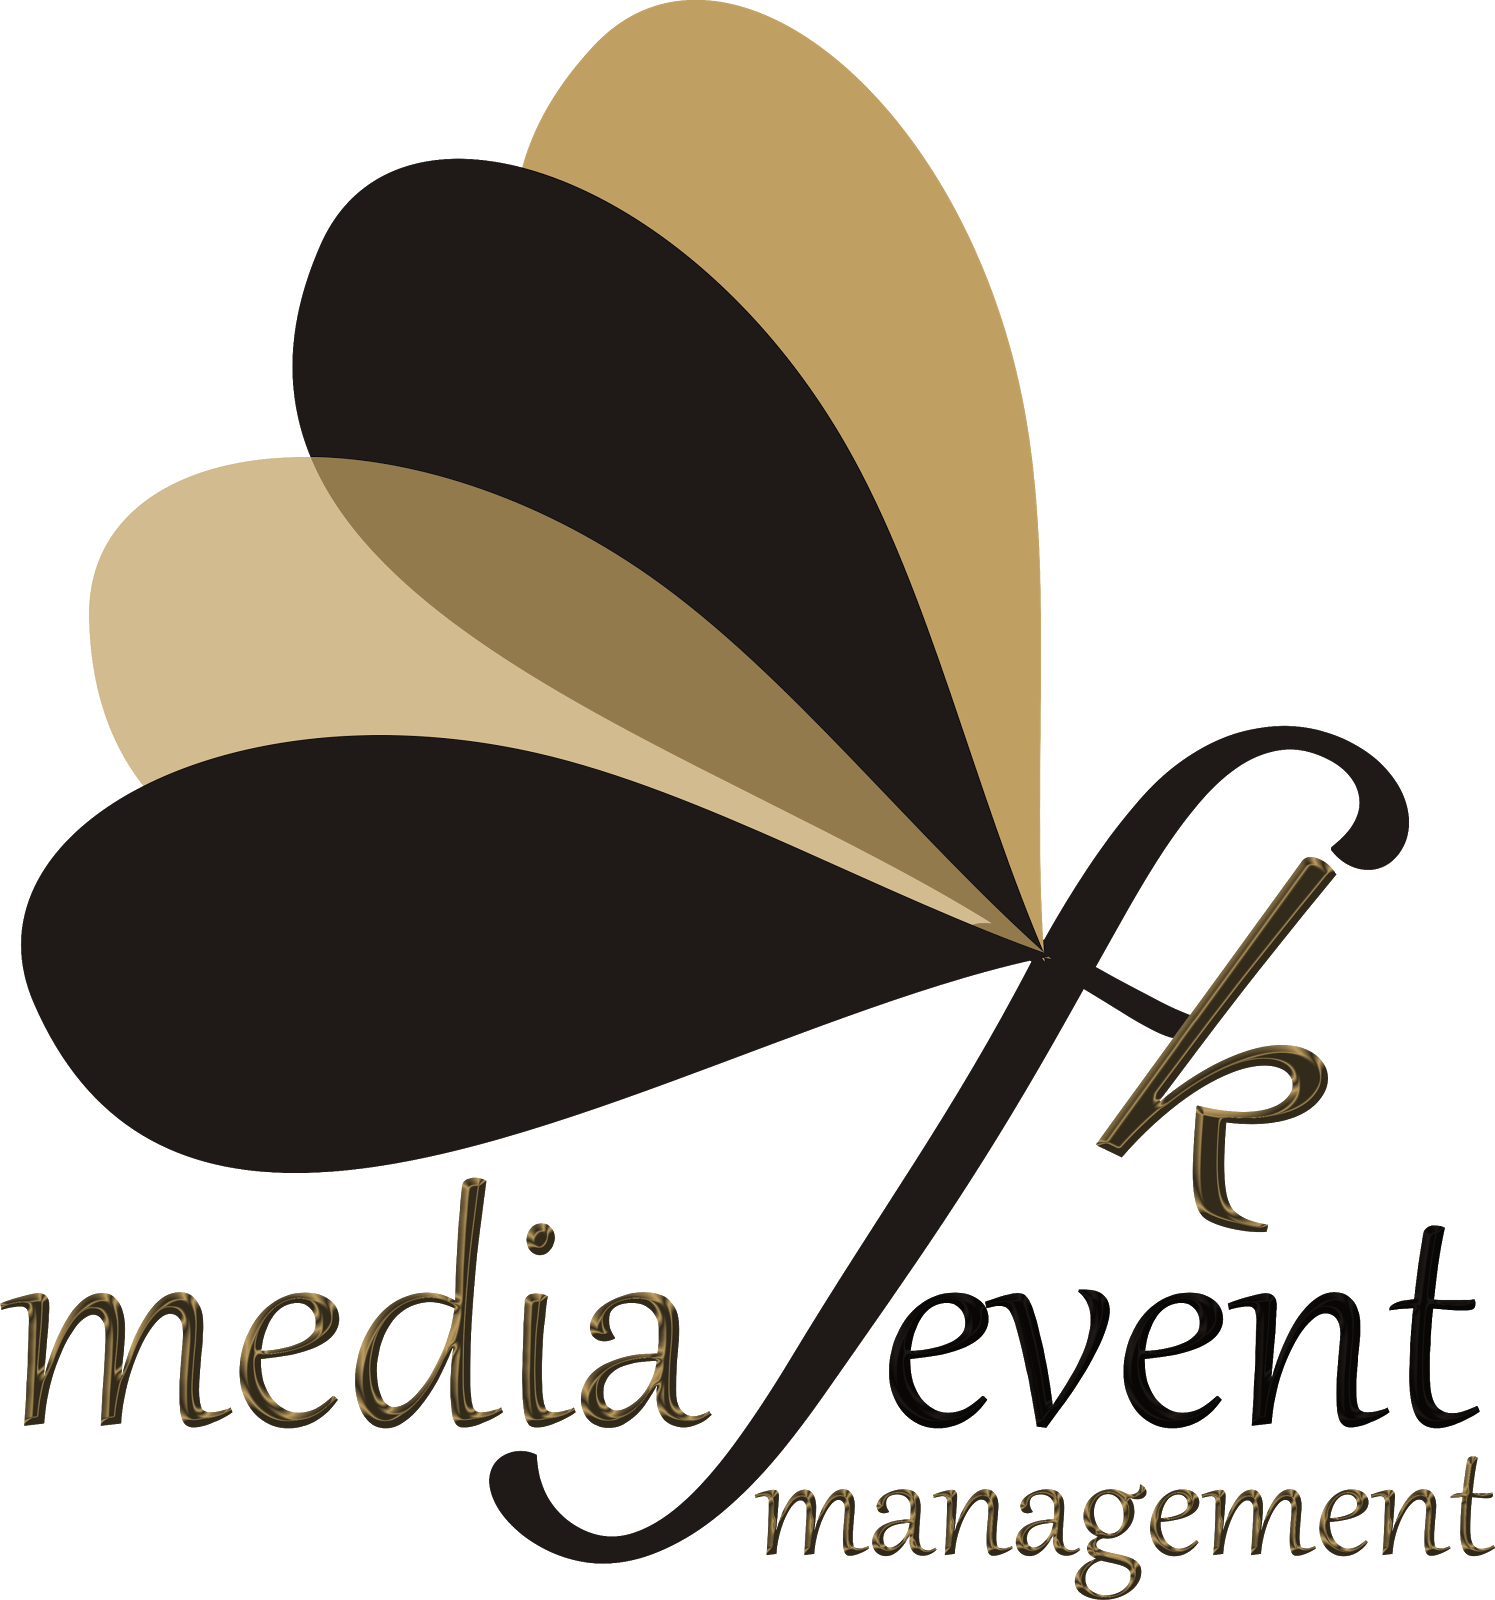 Free Event Management Logos  High Quality Designs